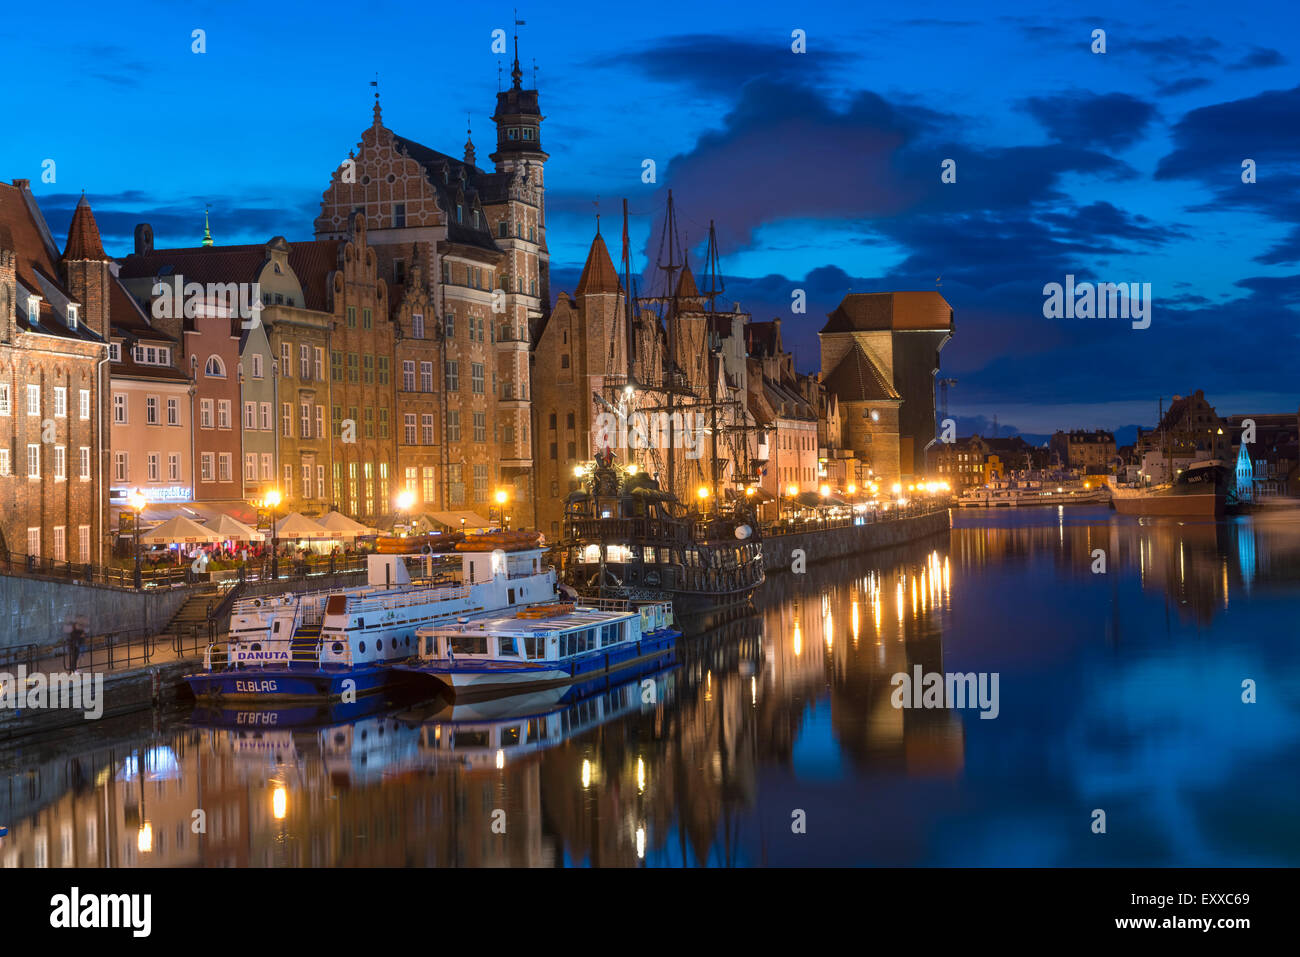 Gdansk, Poland - Beautiful, historic old town district of Gdansk, Poland on the banks of the River Motlawa at night Stock Photo